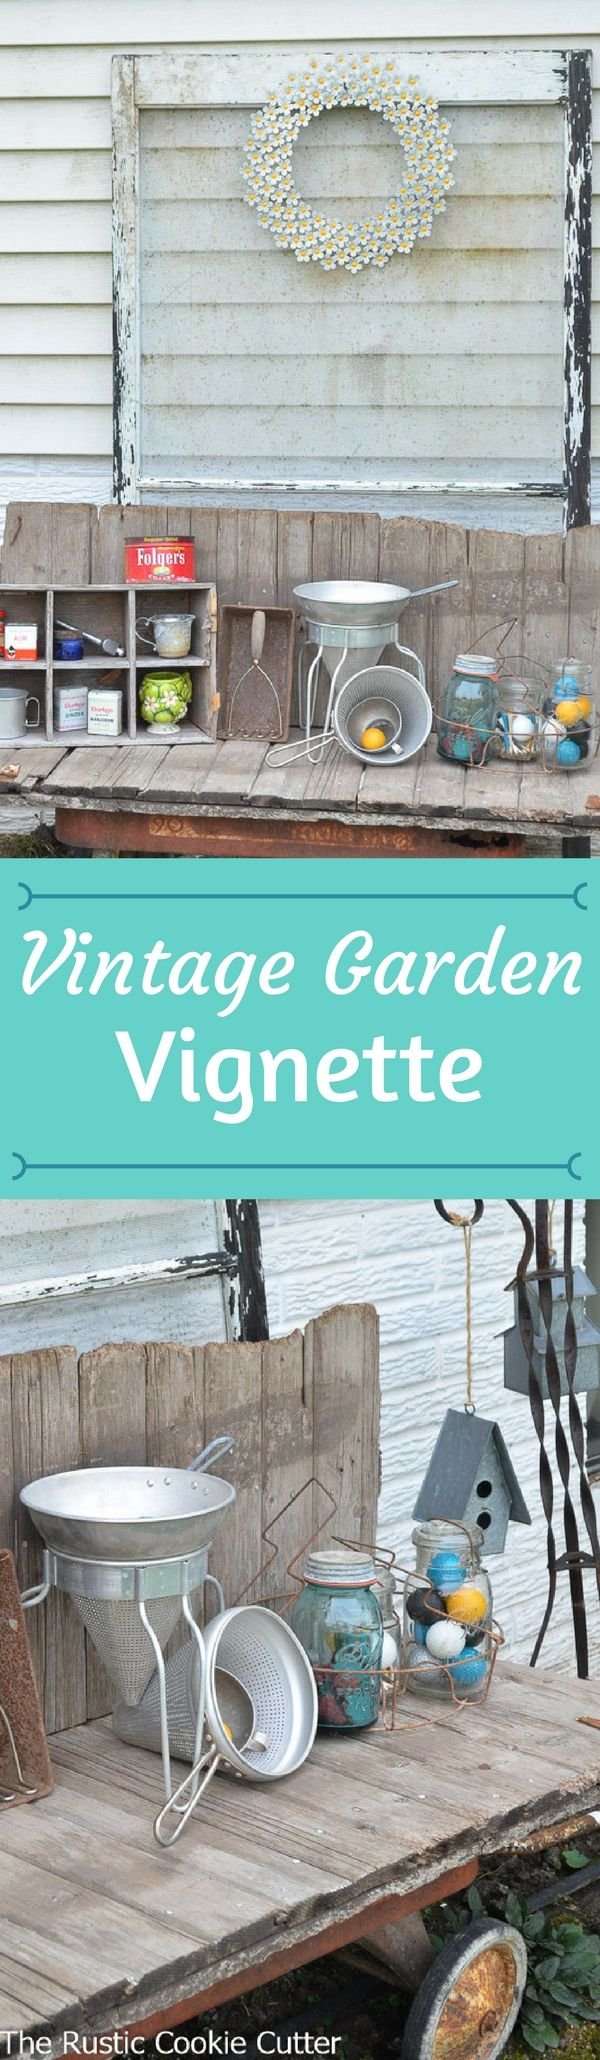 My vintage garden vignette on the north side of our house. I love how it turned out with my vintage treasures!